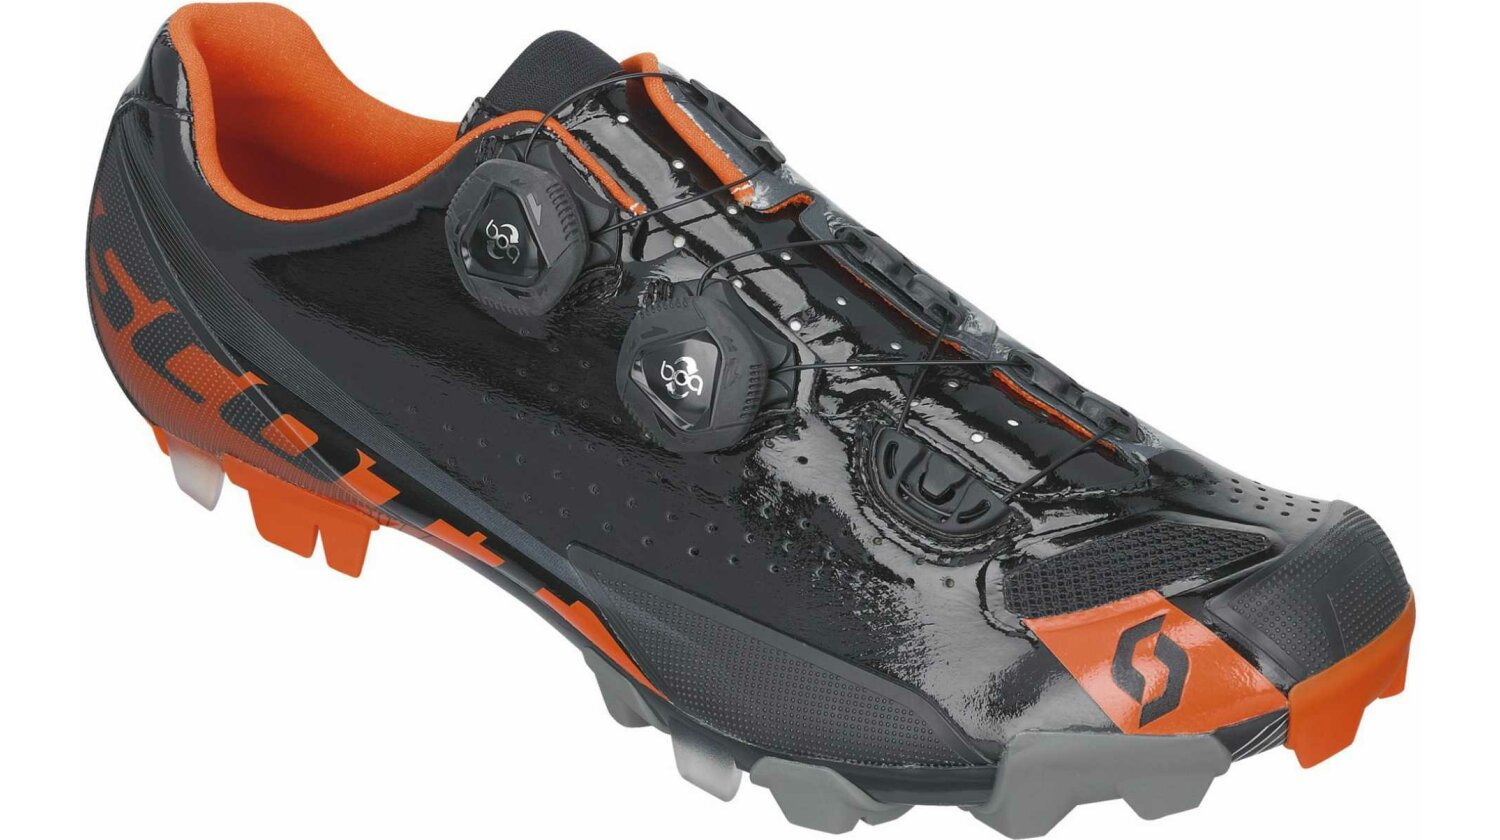 Scott MTB Premium Schuh black/orange gloss 39